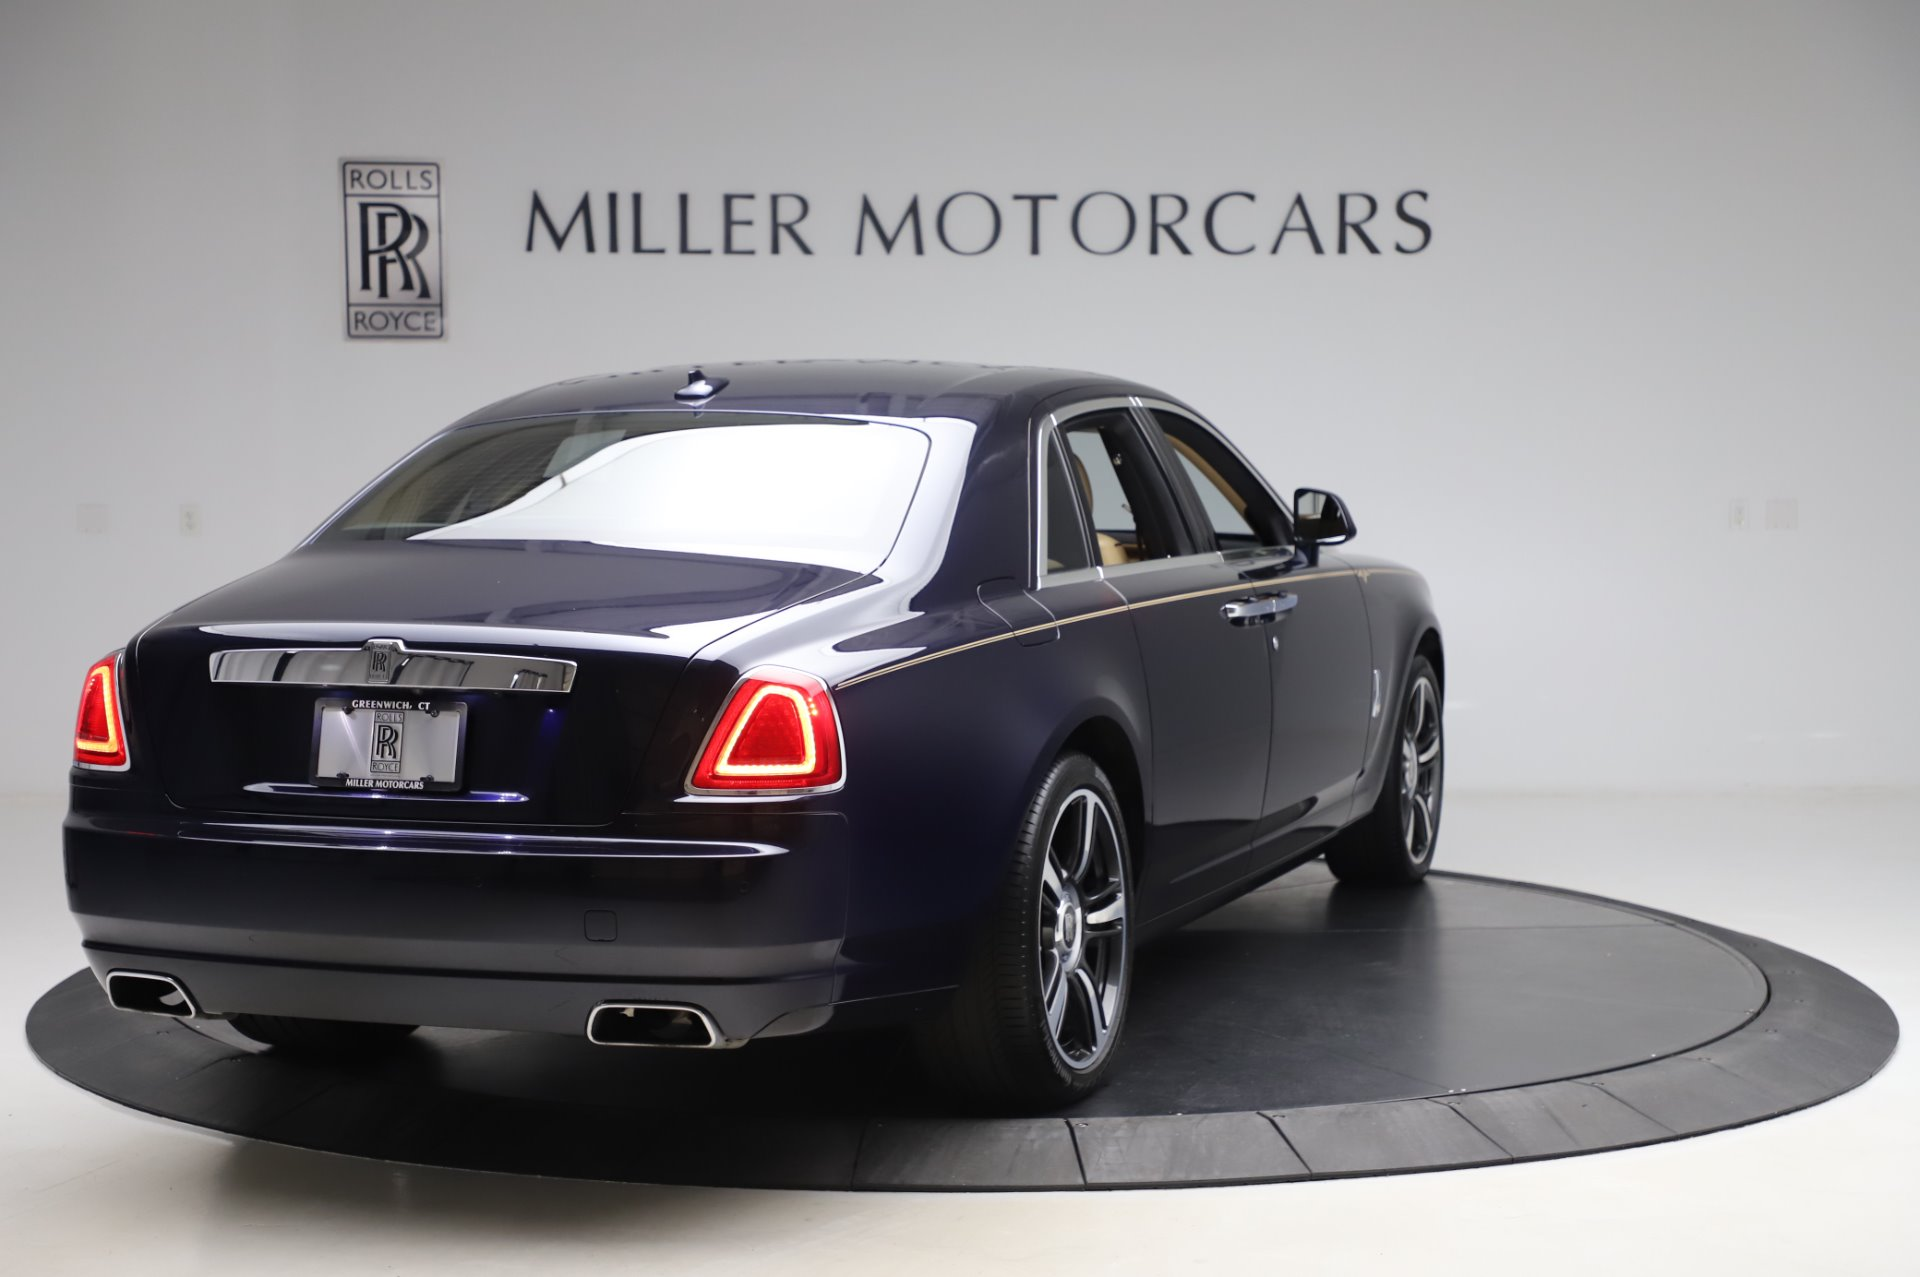 Used 2014 Rolls-Royce Ghost V-Spec For Sale In Westport, CT 858_p6